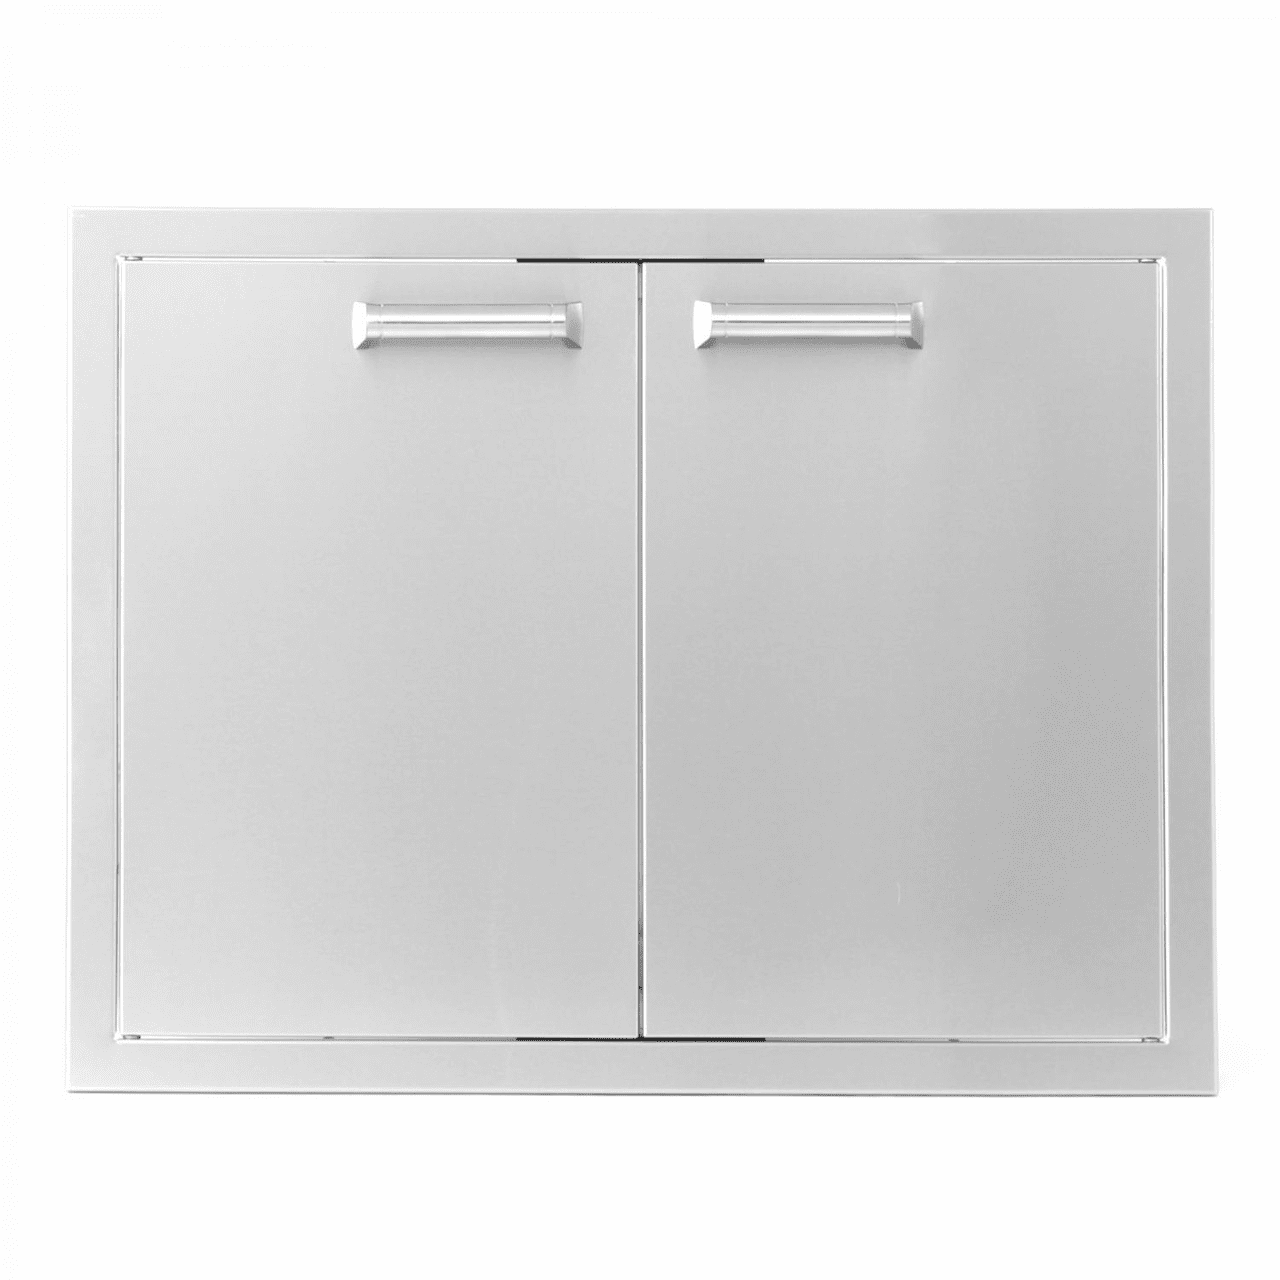 PCM-350H 30 X 19 Double Access Door Stainless Steel